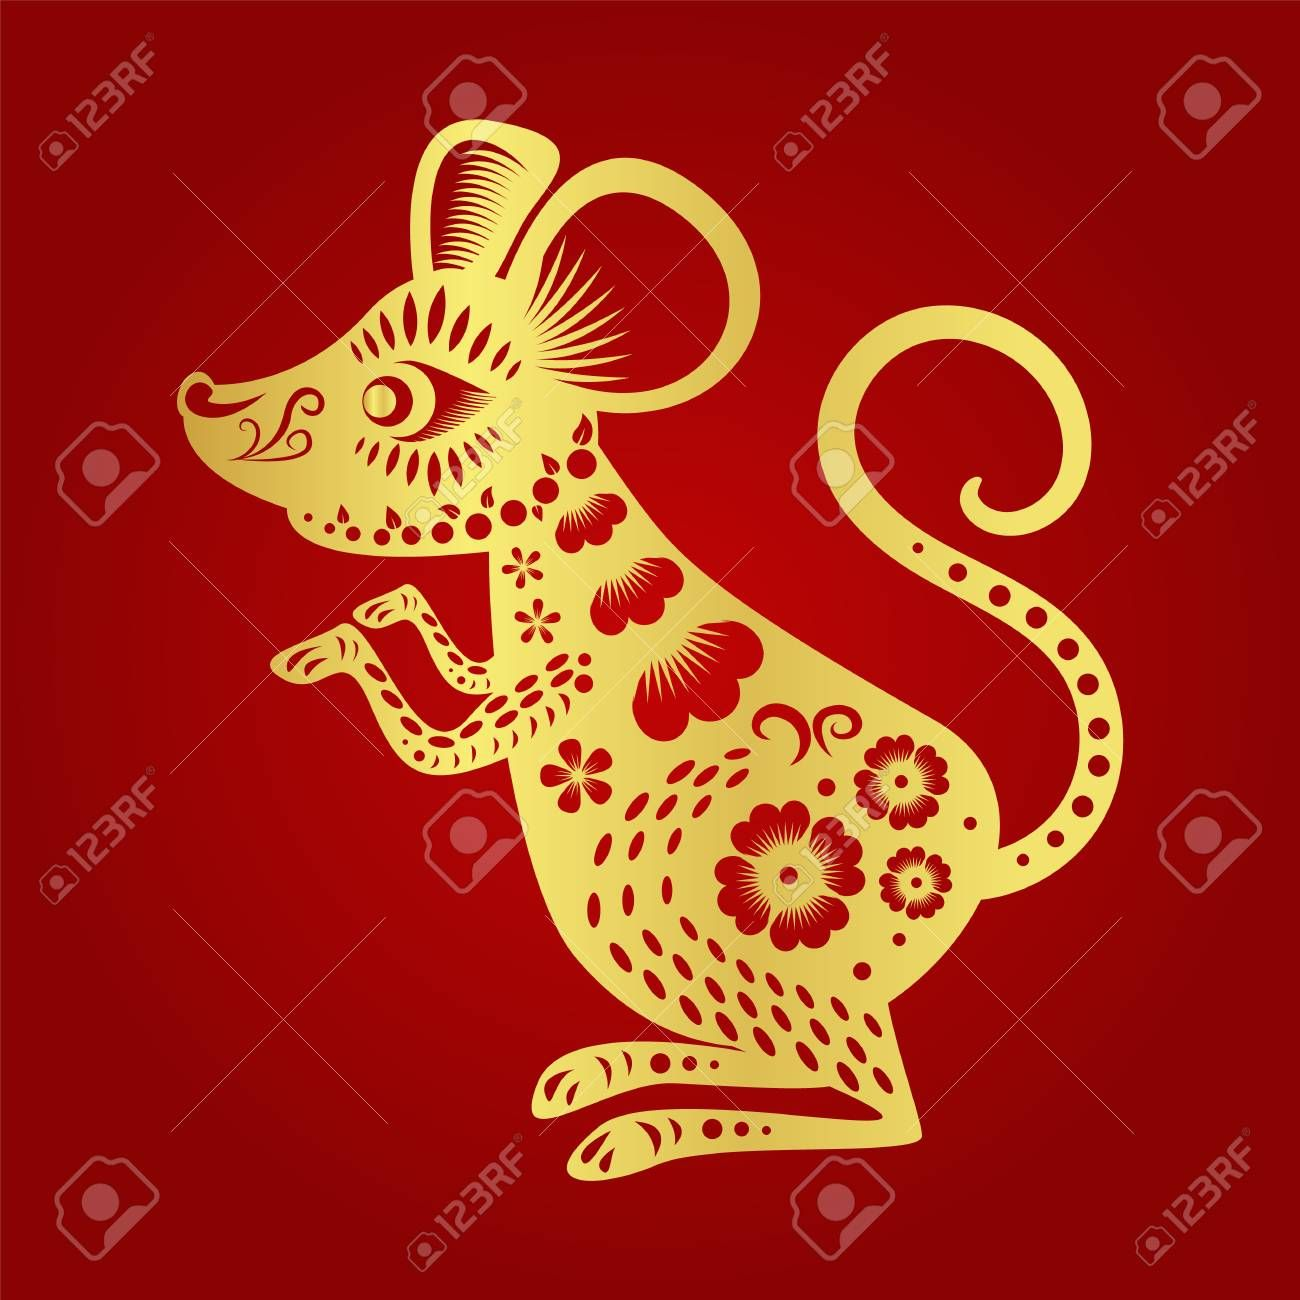 Happy chinese new year 2020 , year of the rat , sponsored